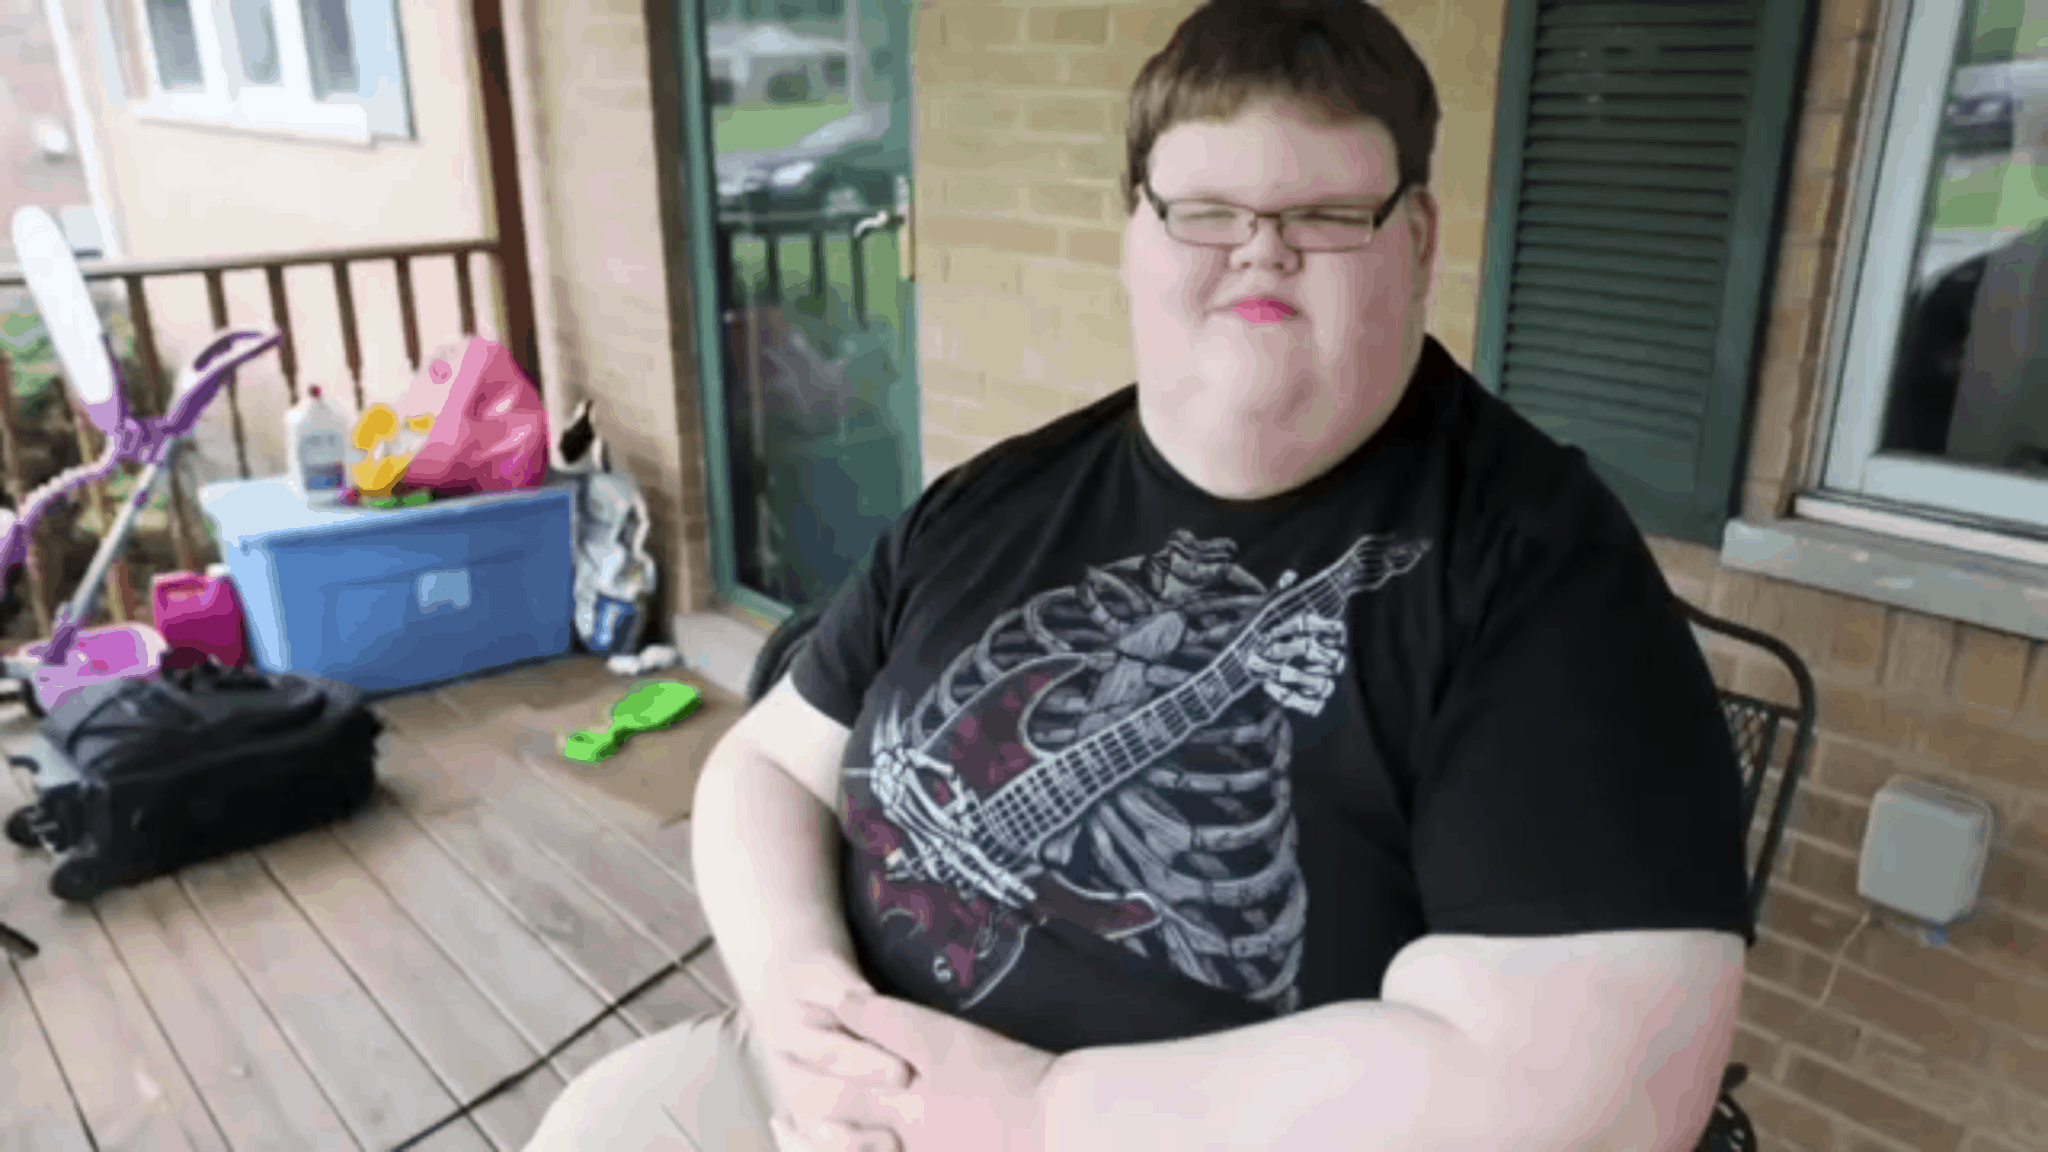 At Just 15 Years Old He Weighed 715 Pounds Just Wait Until You See Him Today